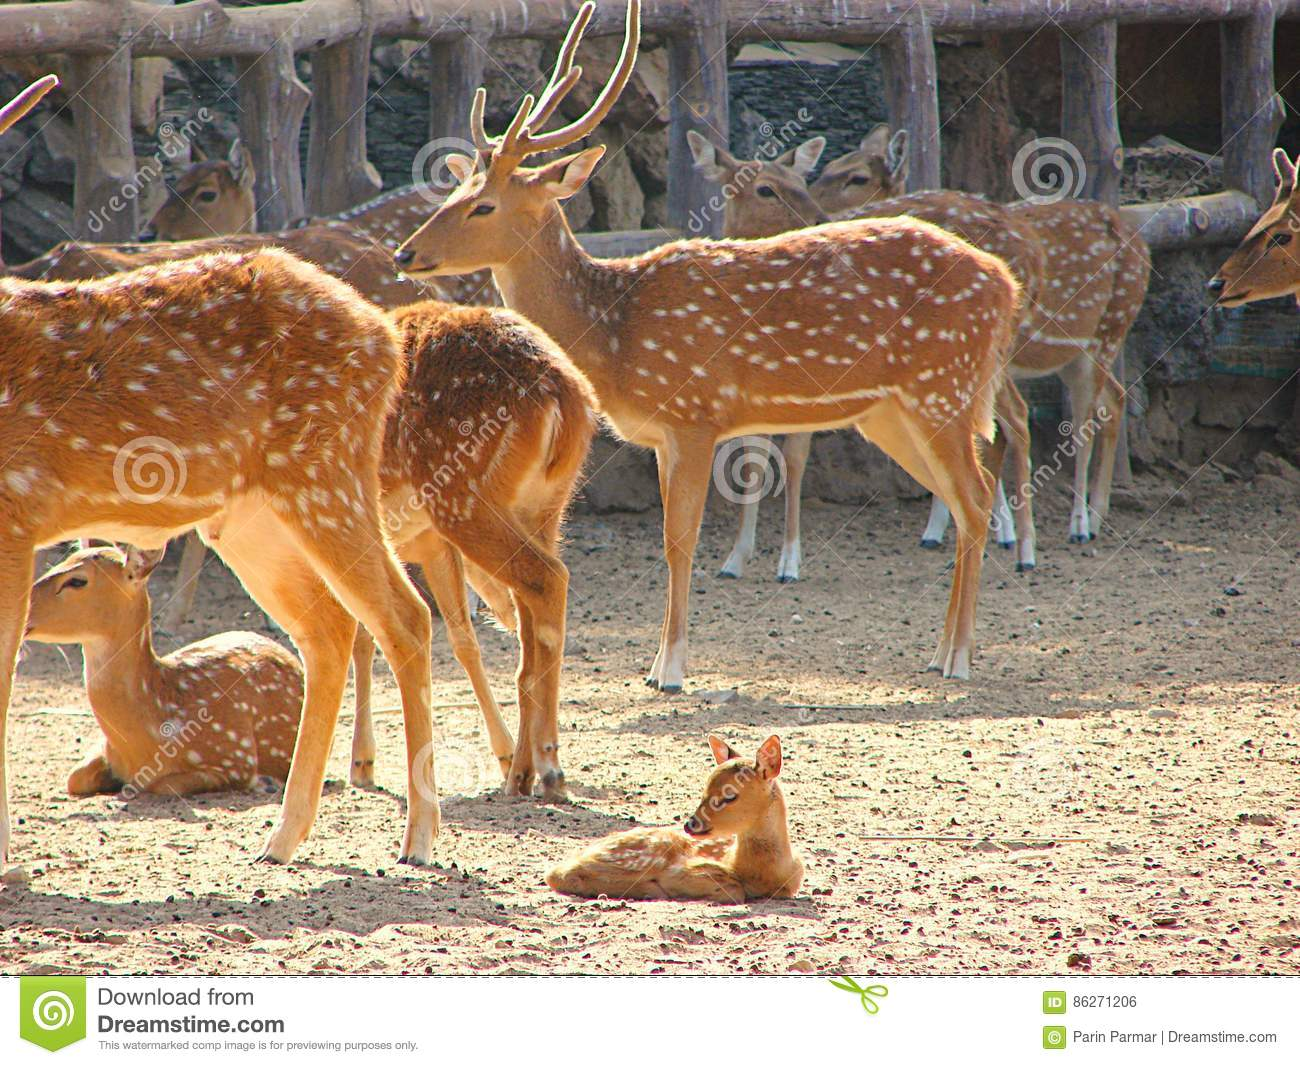 A Group of Spotted Deer Chital with a Fawn and Juveniles in Zoo, Jaipur, Rajasthan, India